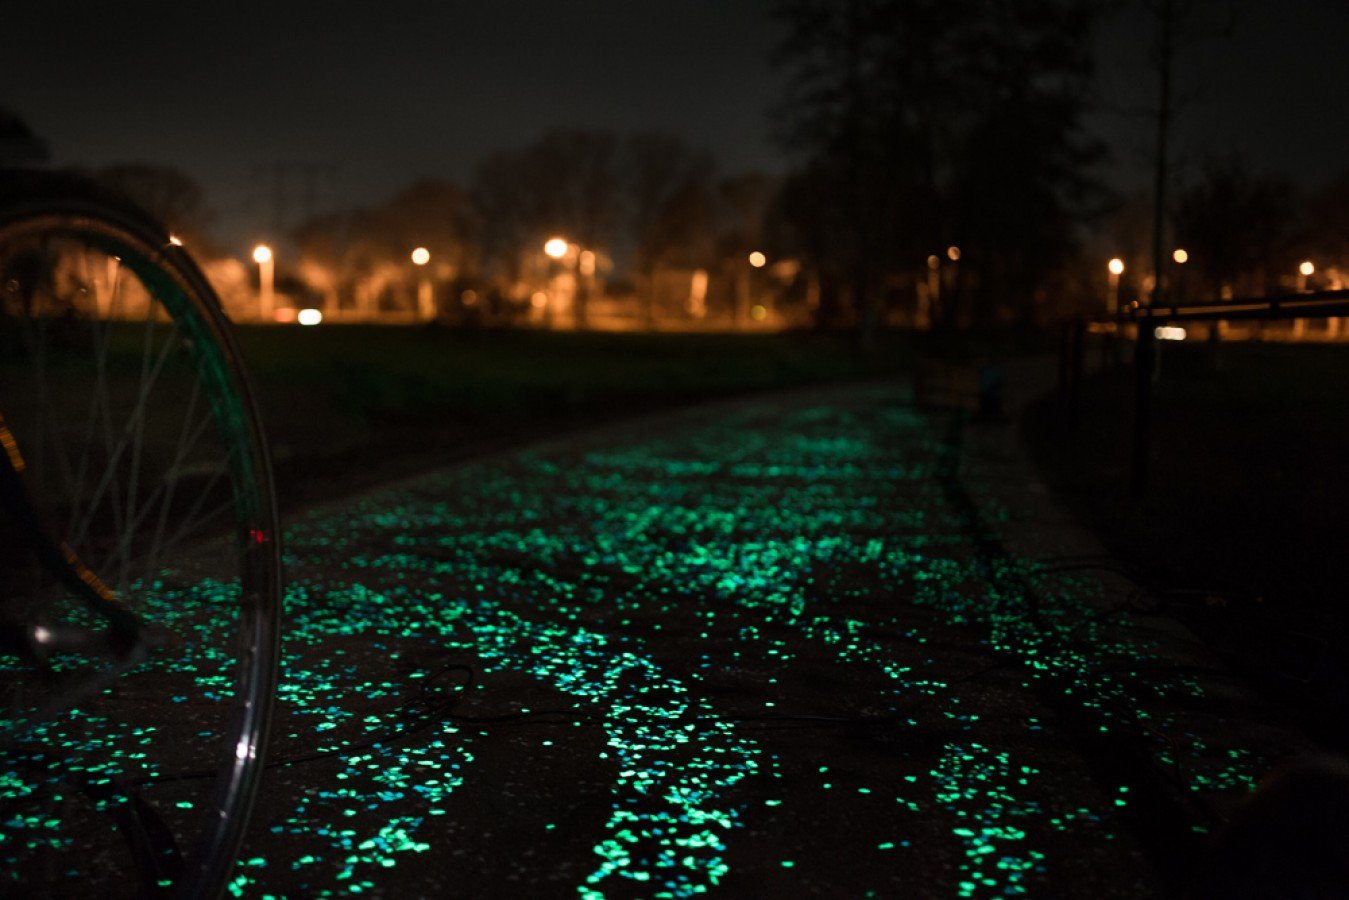 van-gogh-roosegaarde-starry-night-bike-path-4